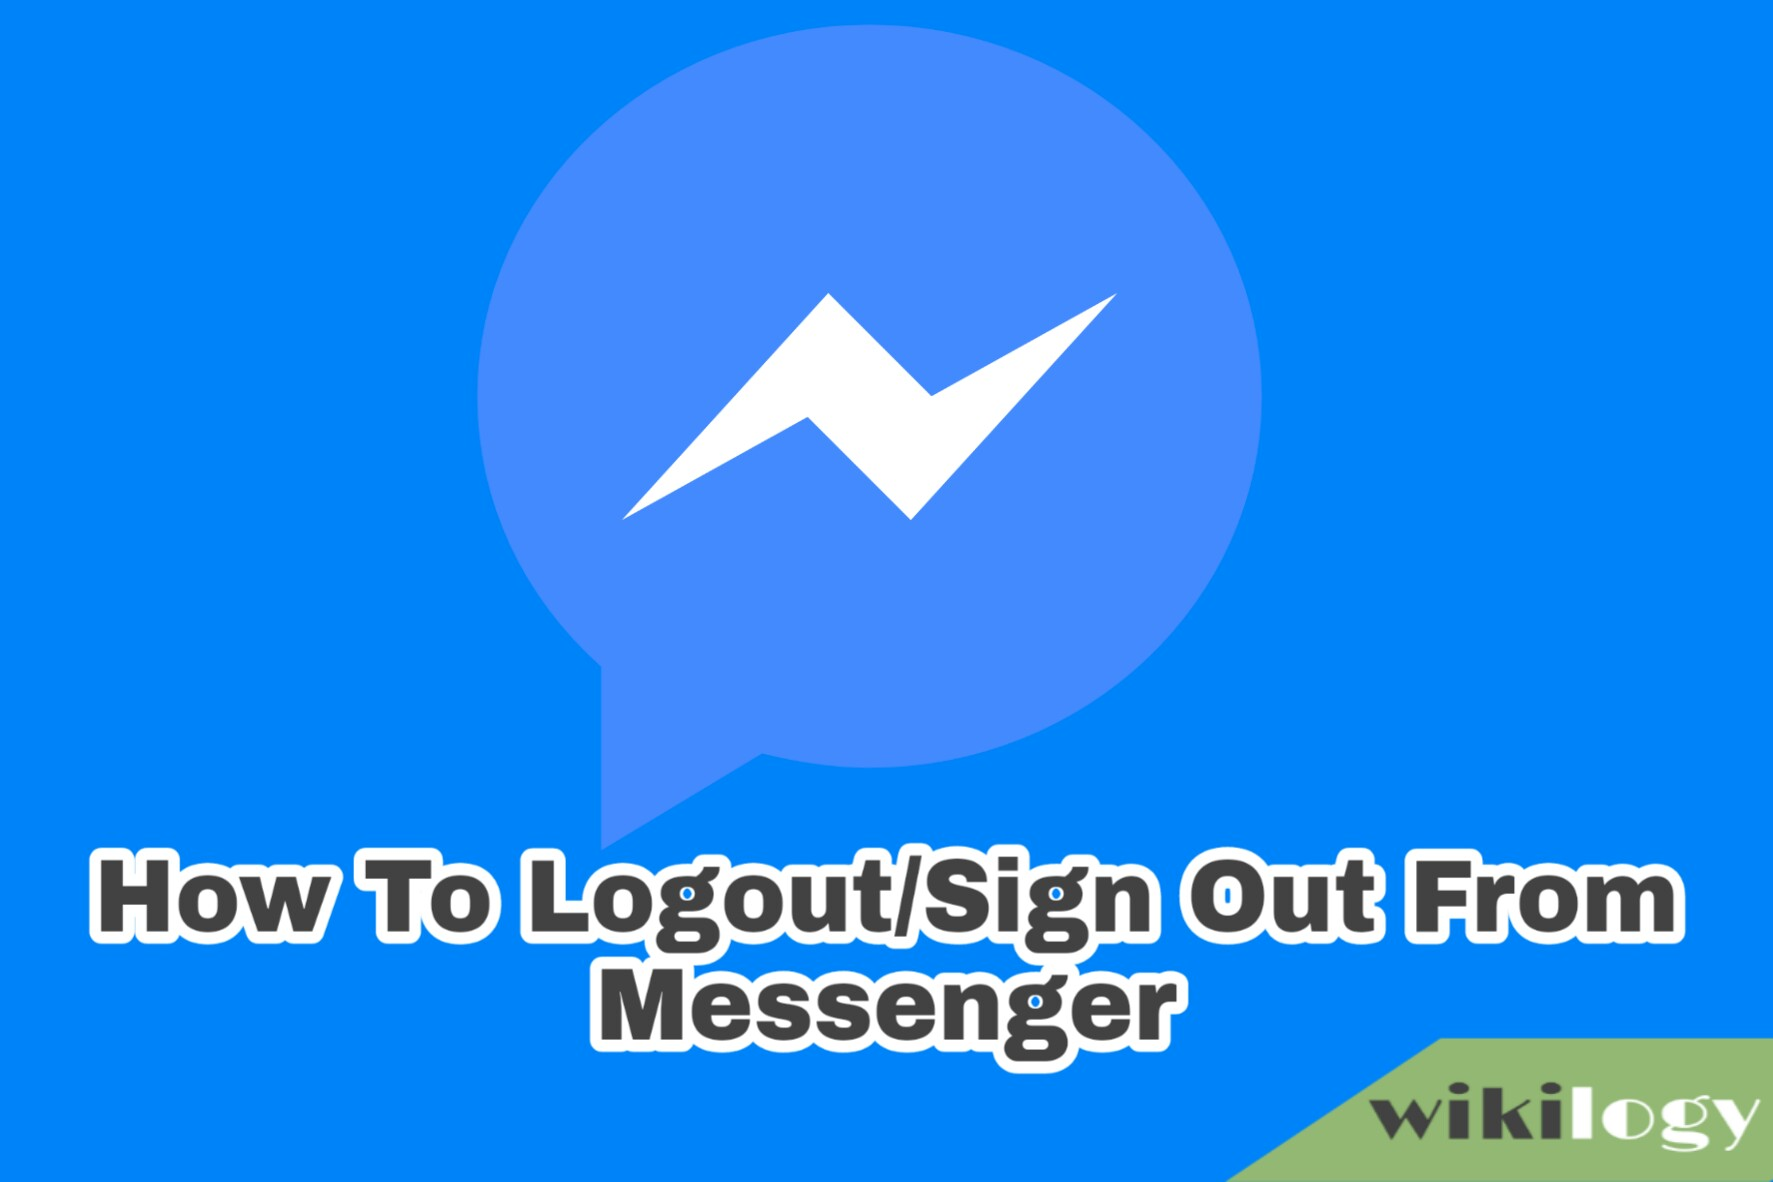 how to logout from messenger, sign out from messenger